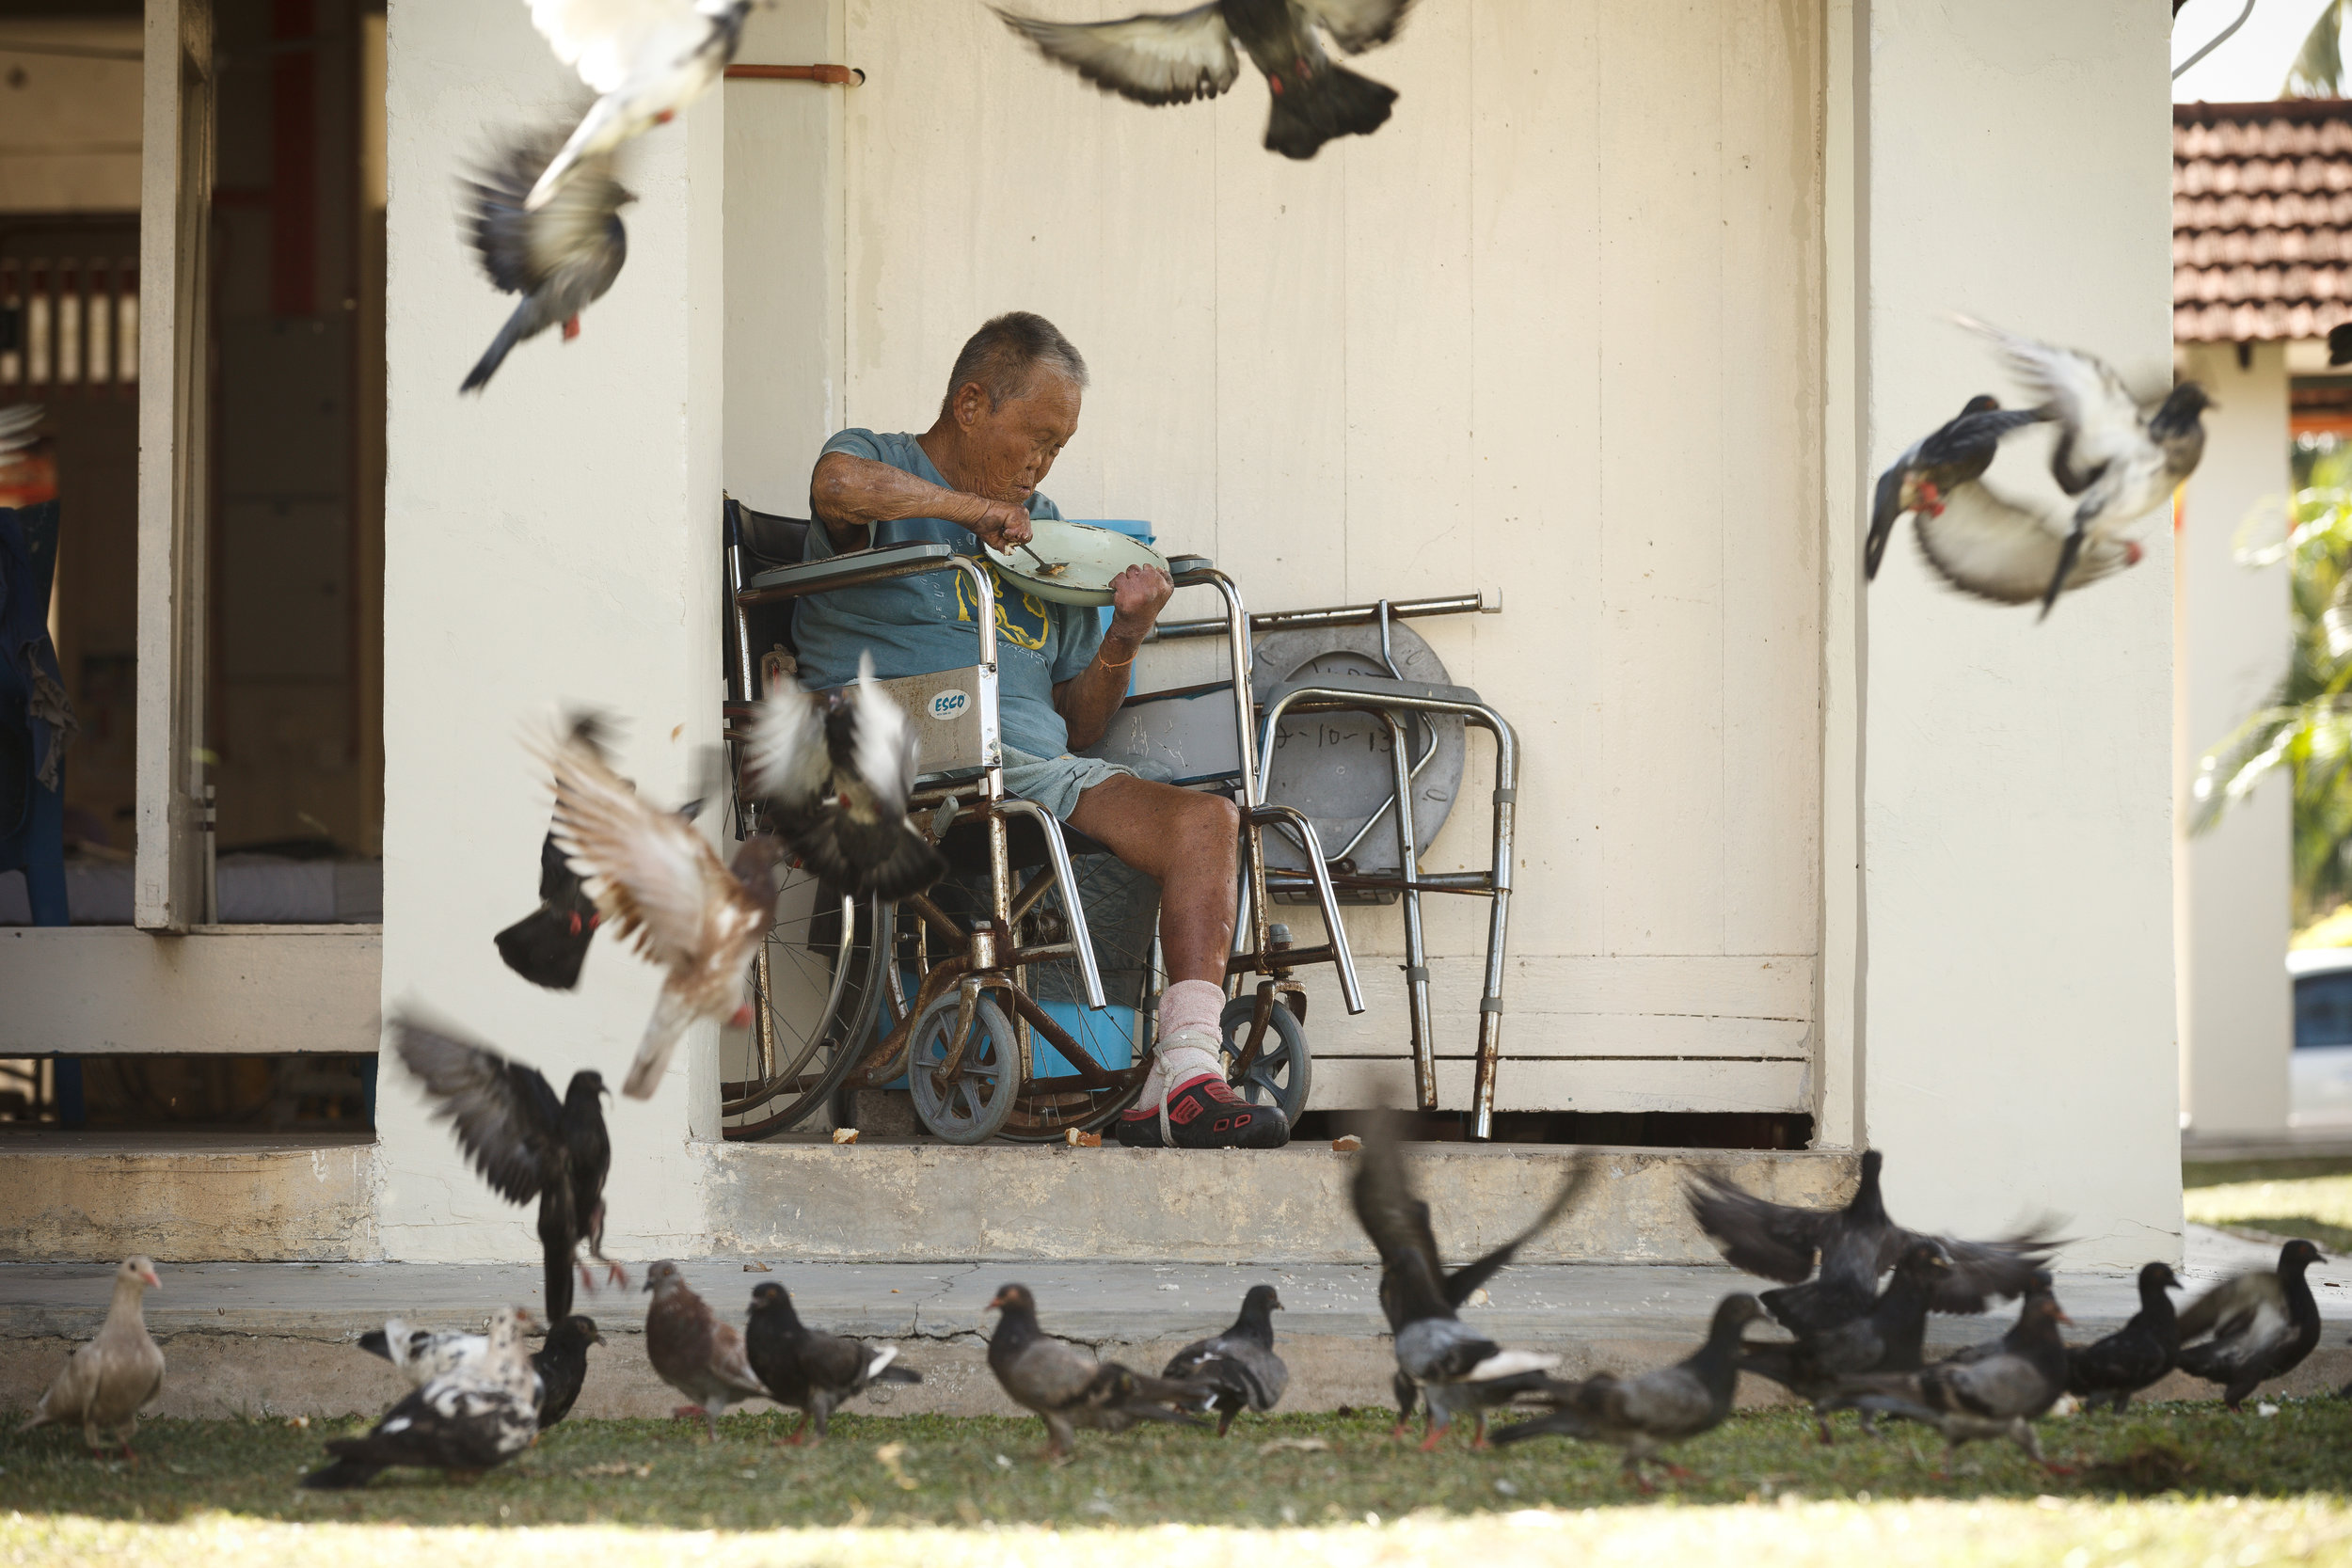 Low would feed the pigeons with his leftover food. (photo by Mango Loke)